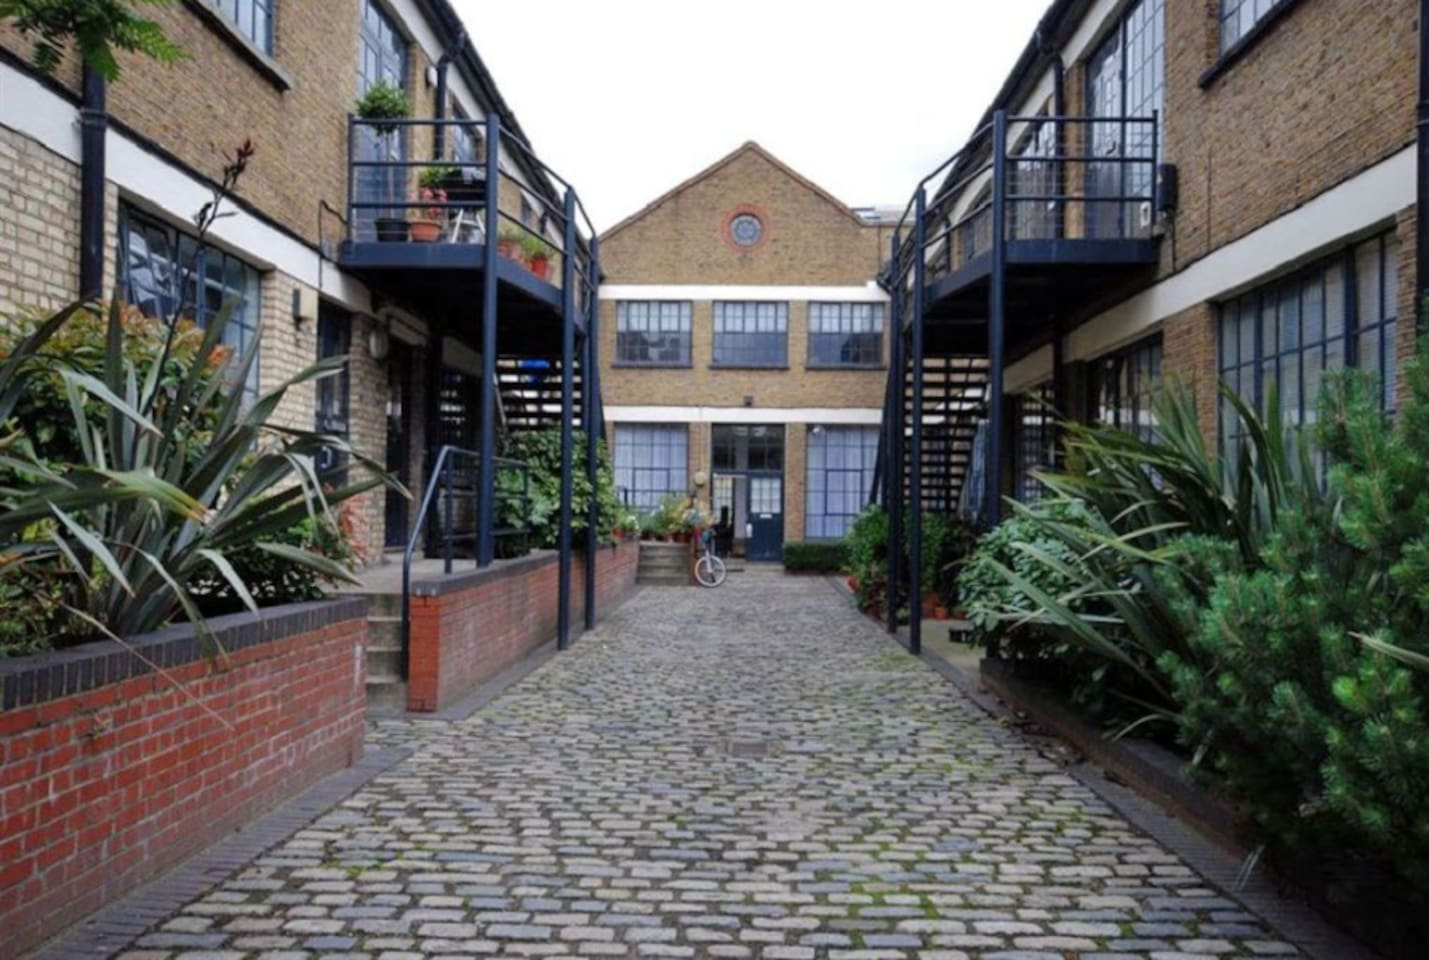 Peaceful cobbled courtyard entrance